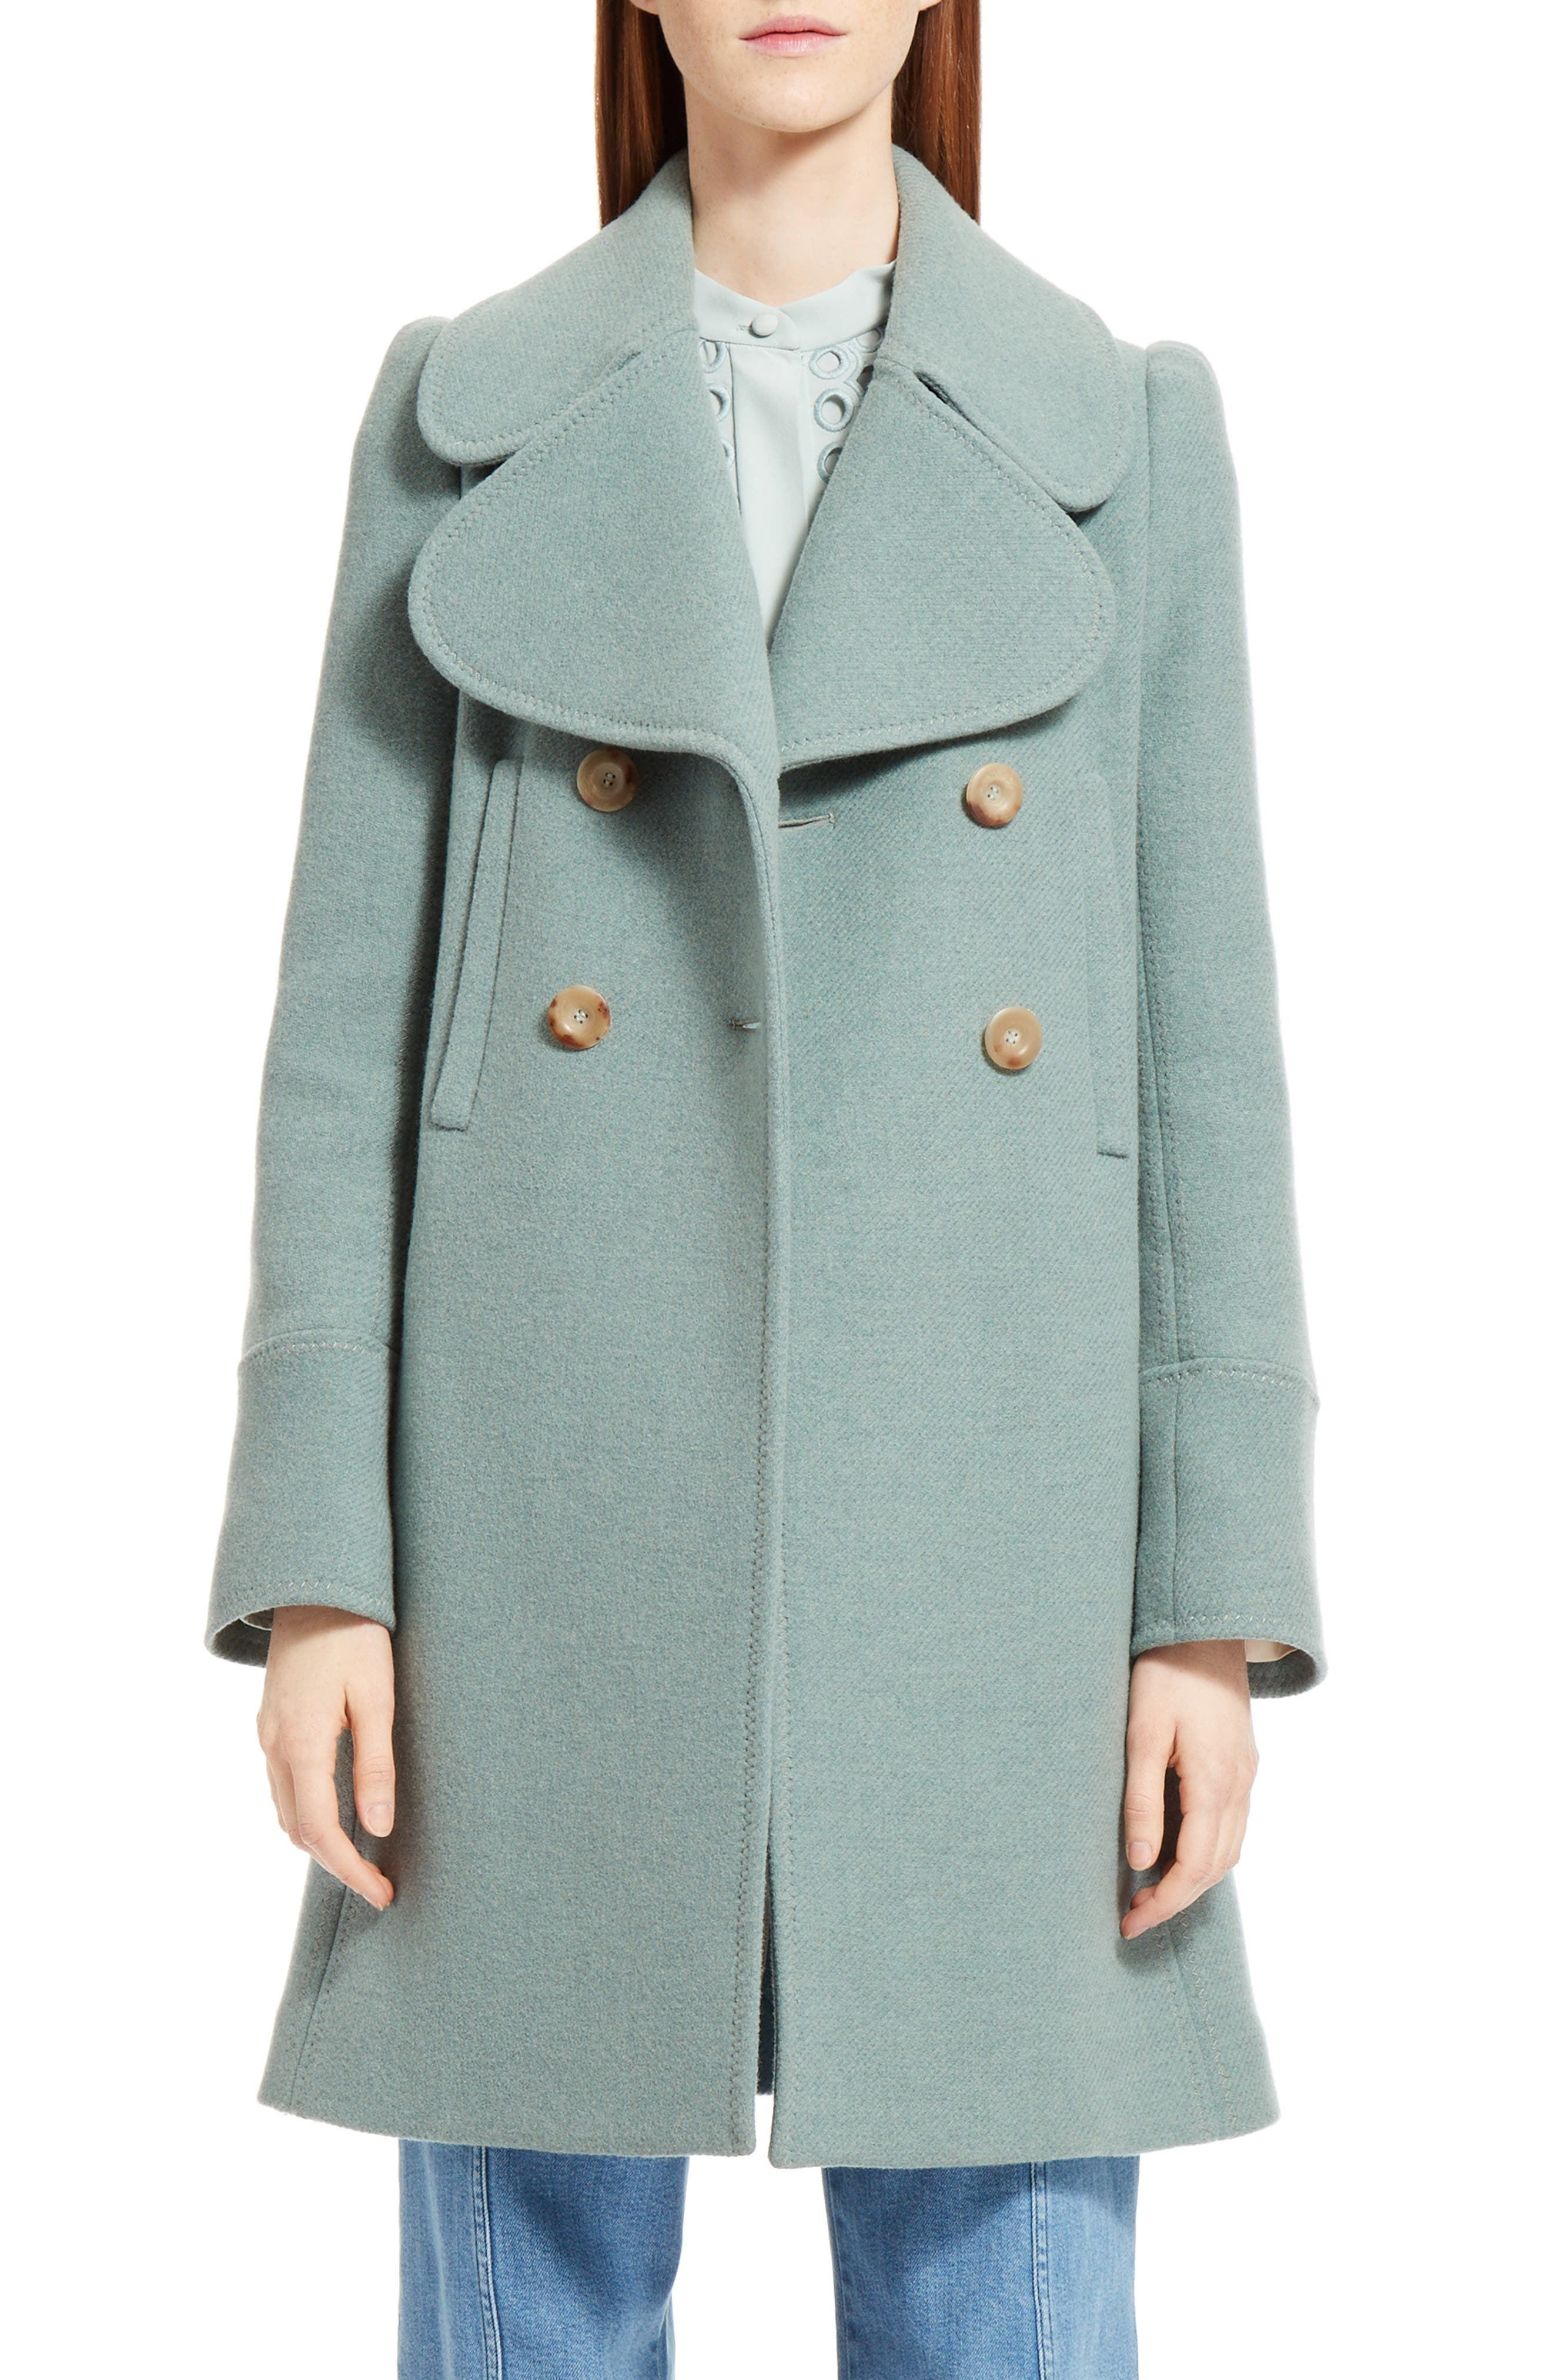 Alternate Image 1 Selected - Chloé Iconic Wool Blend Coat